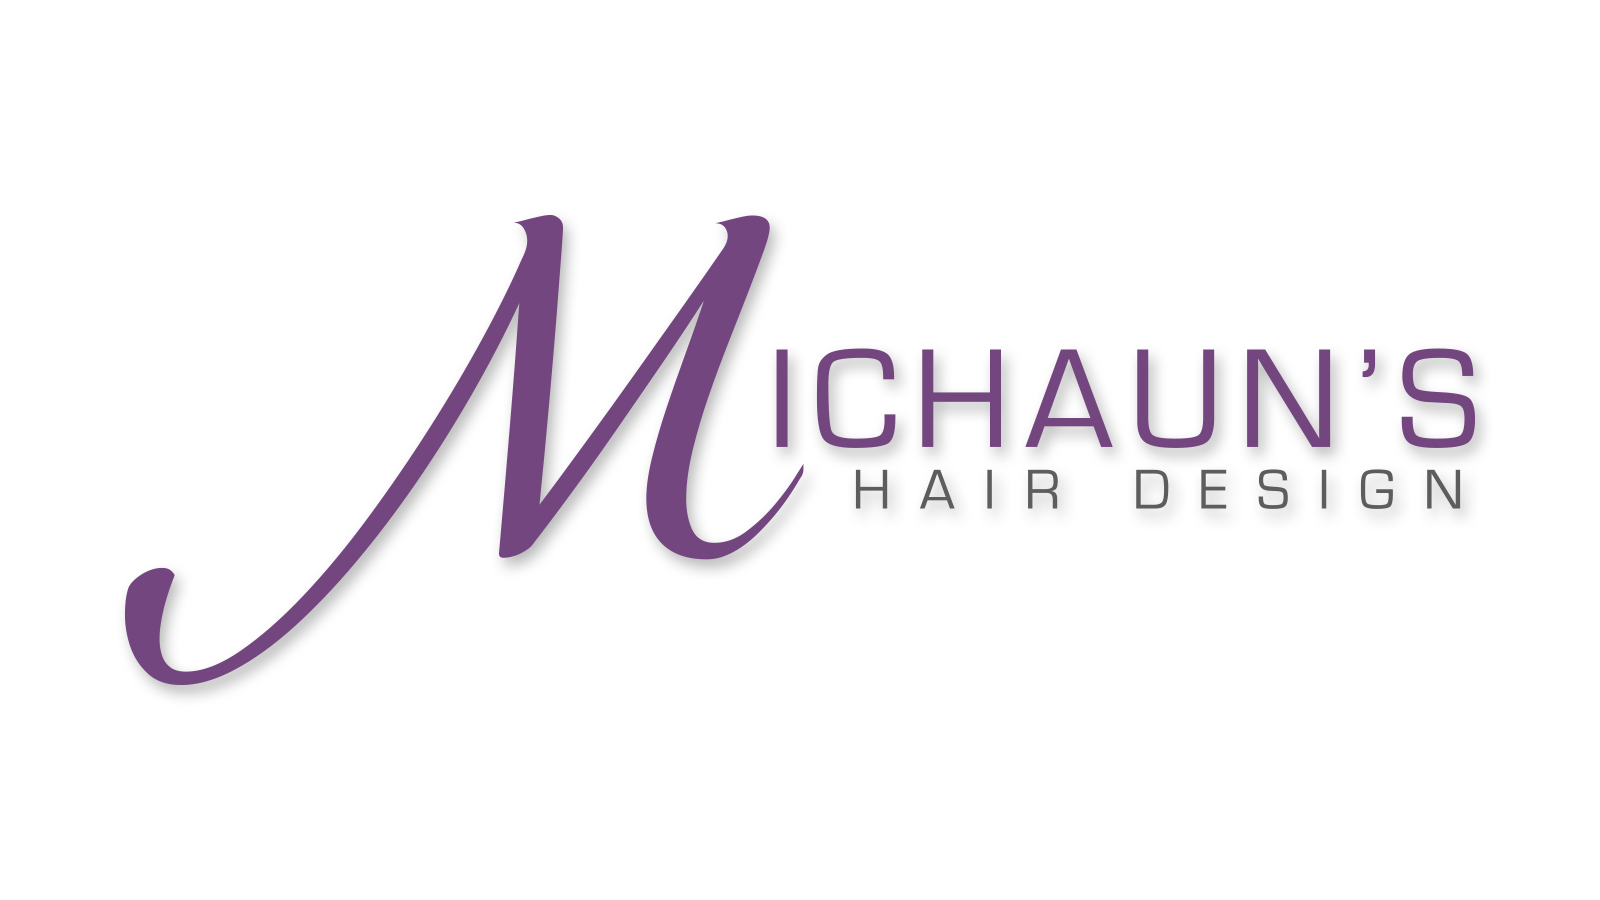 Michaun's Hair Design Logo